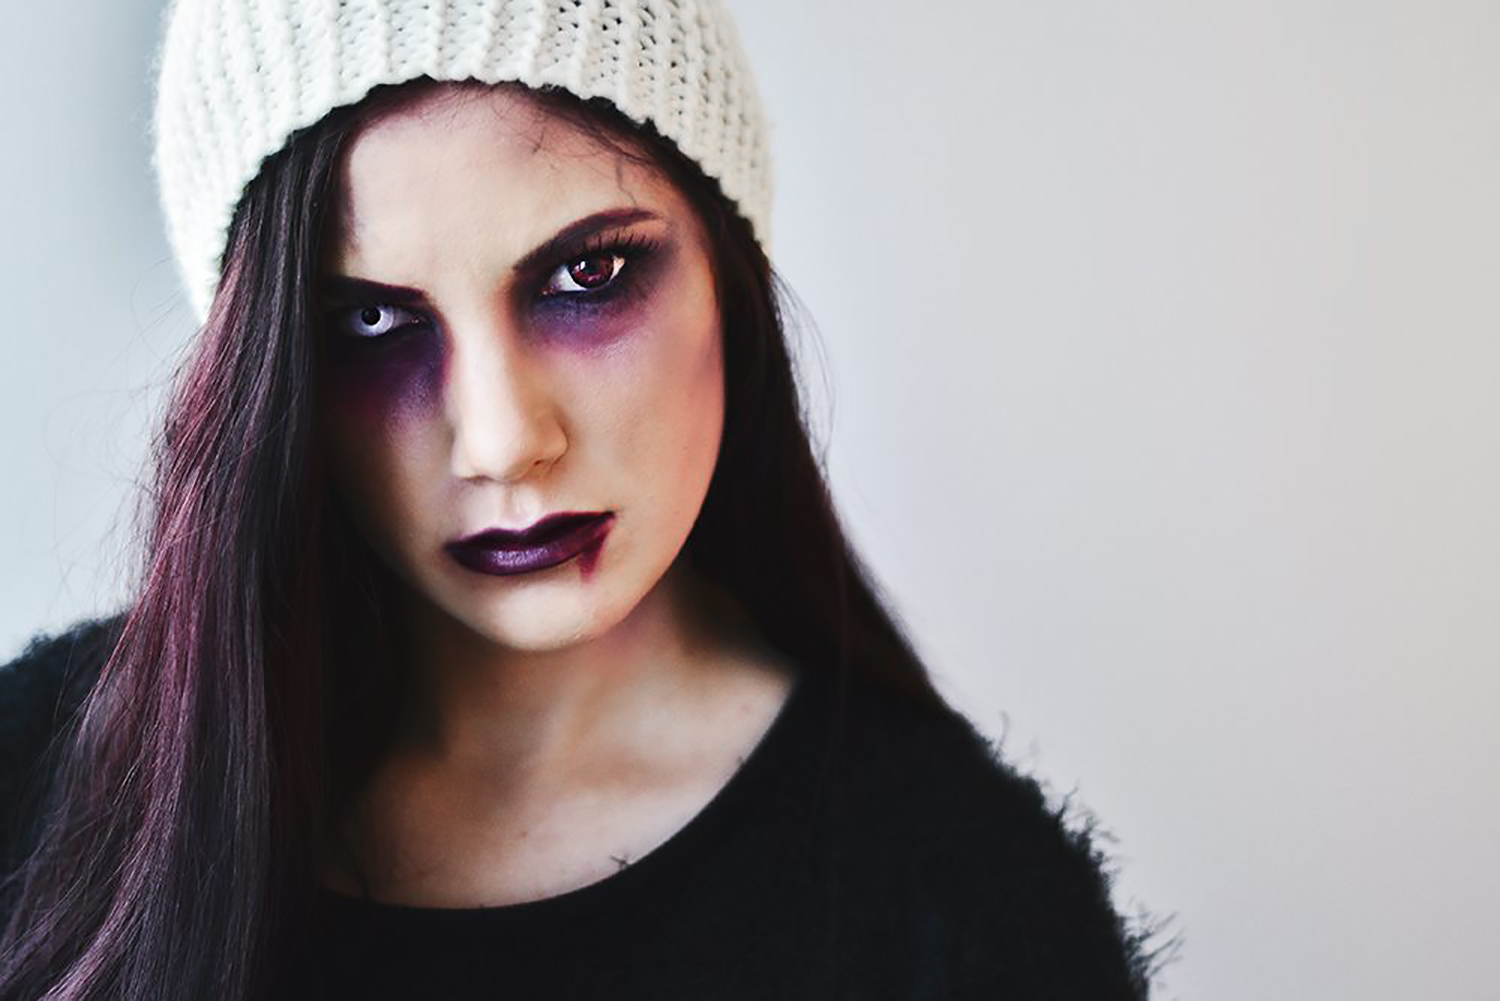 Lost & Haunted Girl Makeup - Easy Halloween Makeup Ideas